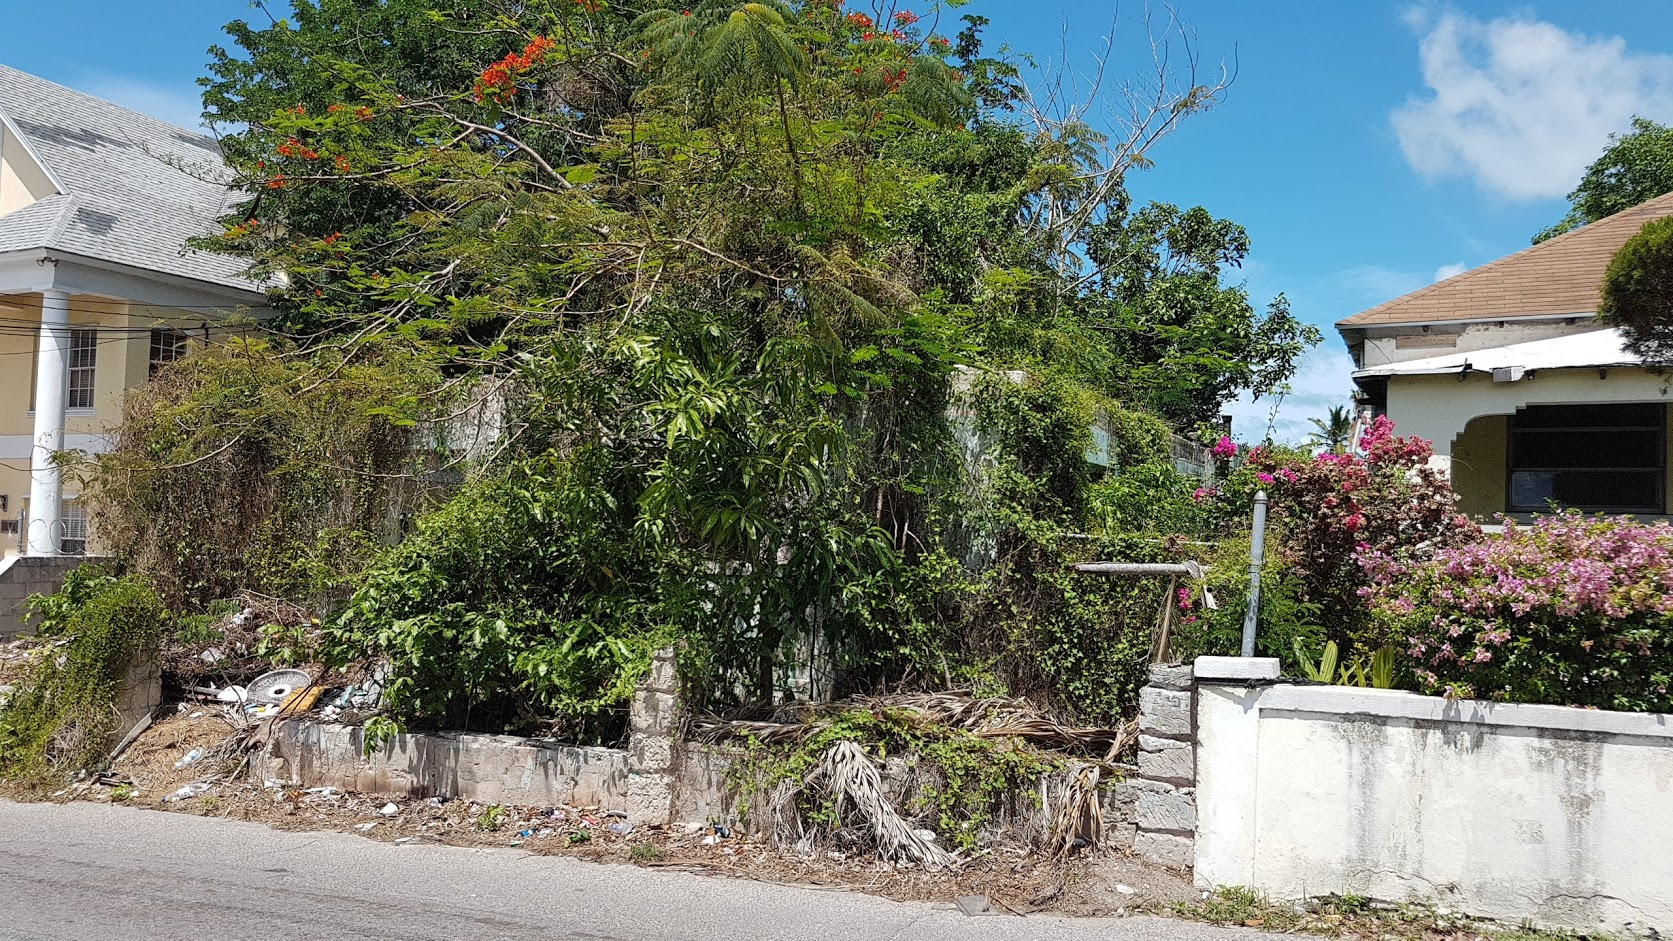 Commercial for Sale at #11 Commercial Lot Hawkins Hill - MLS 30554 Hawkins Hill, Nassau And Paradise Island, Bahamas